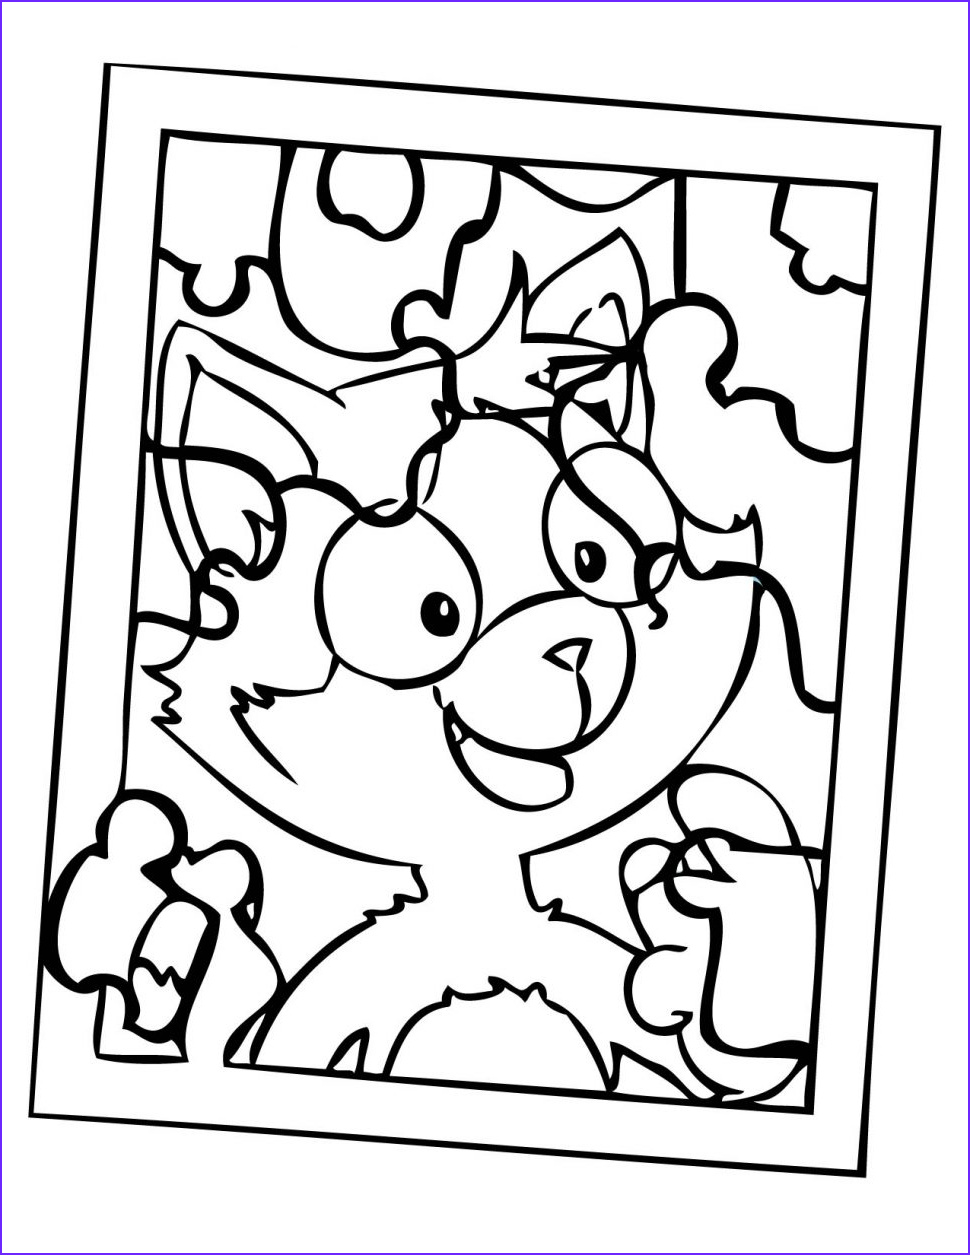 Coloring Puzzles Awesome Gallery 4th Grade Coloring Pages